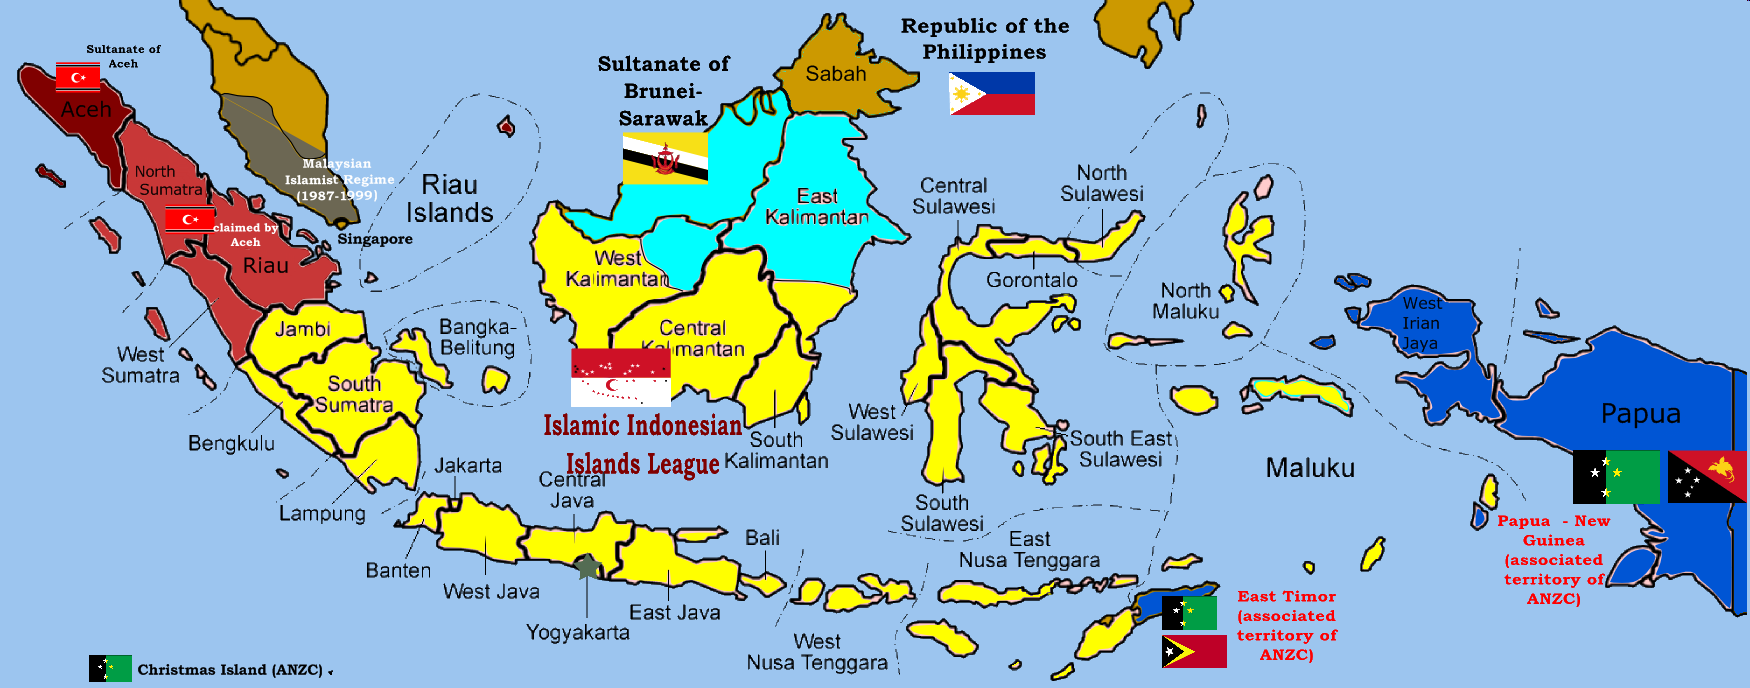 Poltical timeline in indonesia